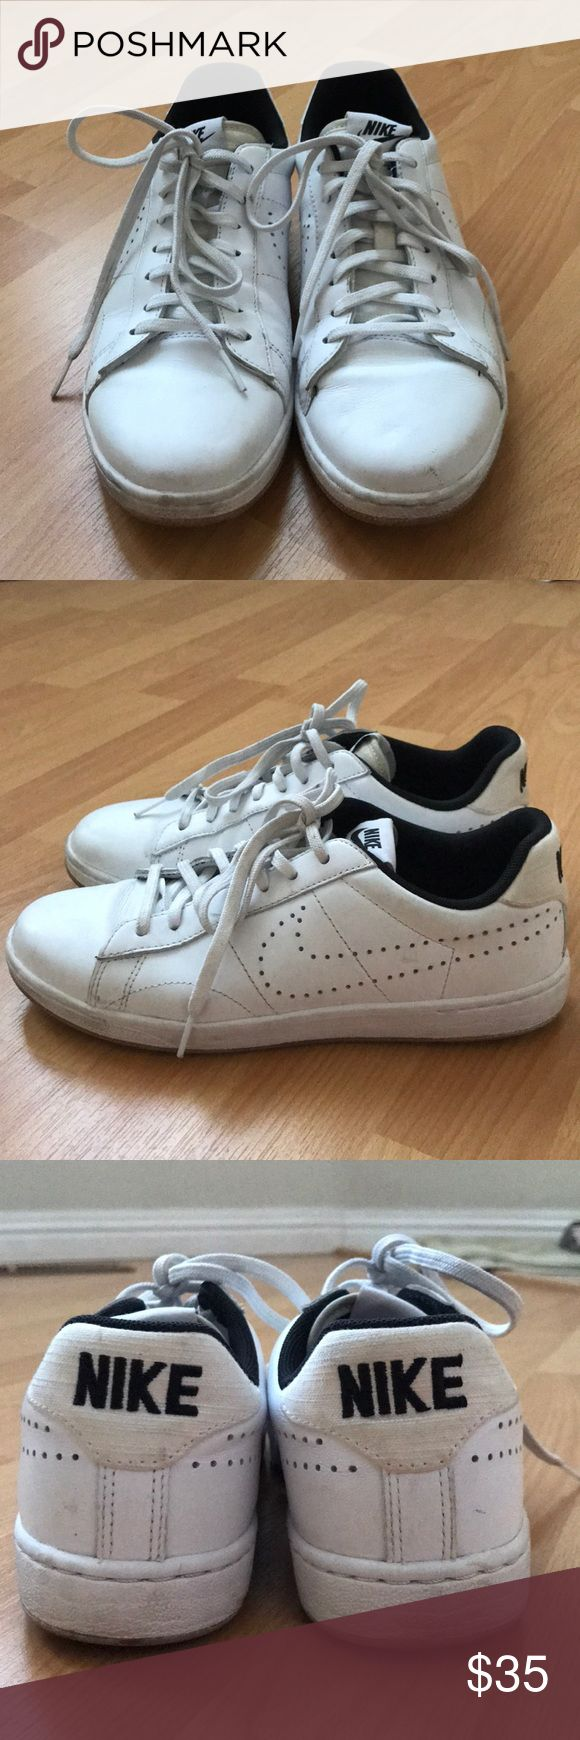 White Nike tennis shoes Plain white Nike tennis shoes, perfect for everyday casual wear. Pair it with some wide leg trousers and you're set 😉 Nike Shoes Sneakers